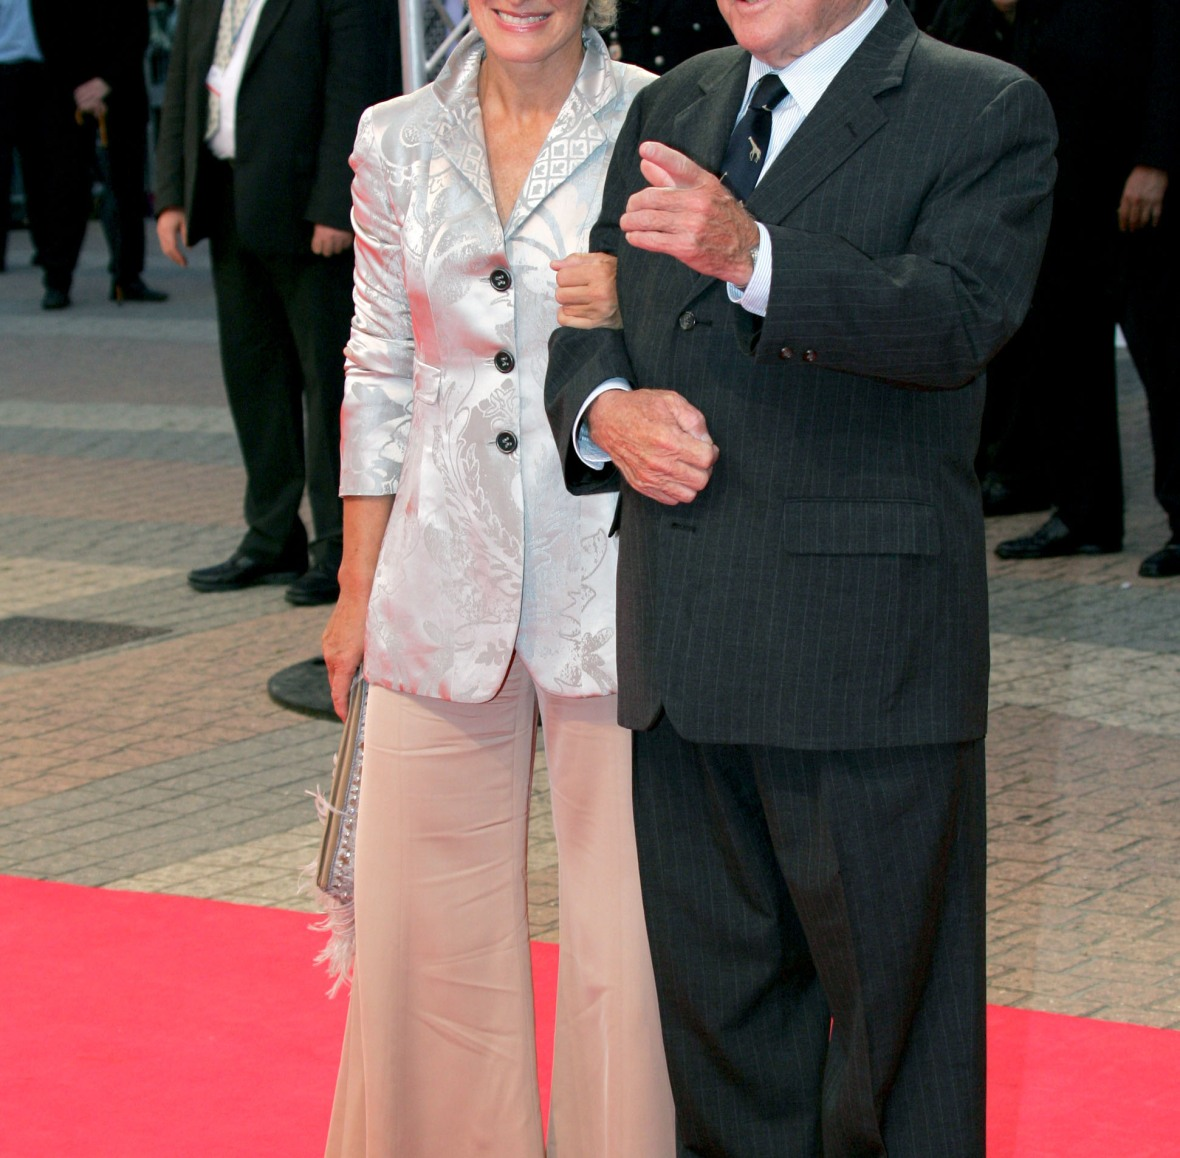 glenn and her father, dr. william. (photo credit: getty images)